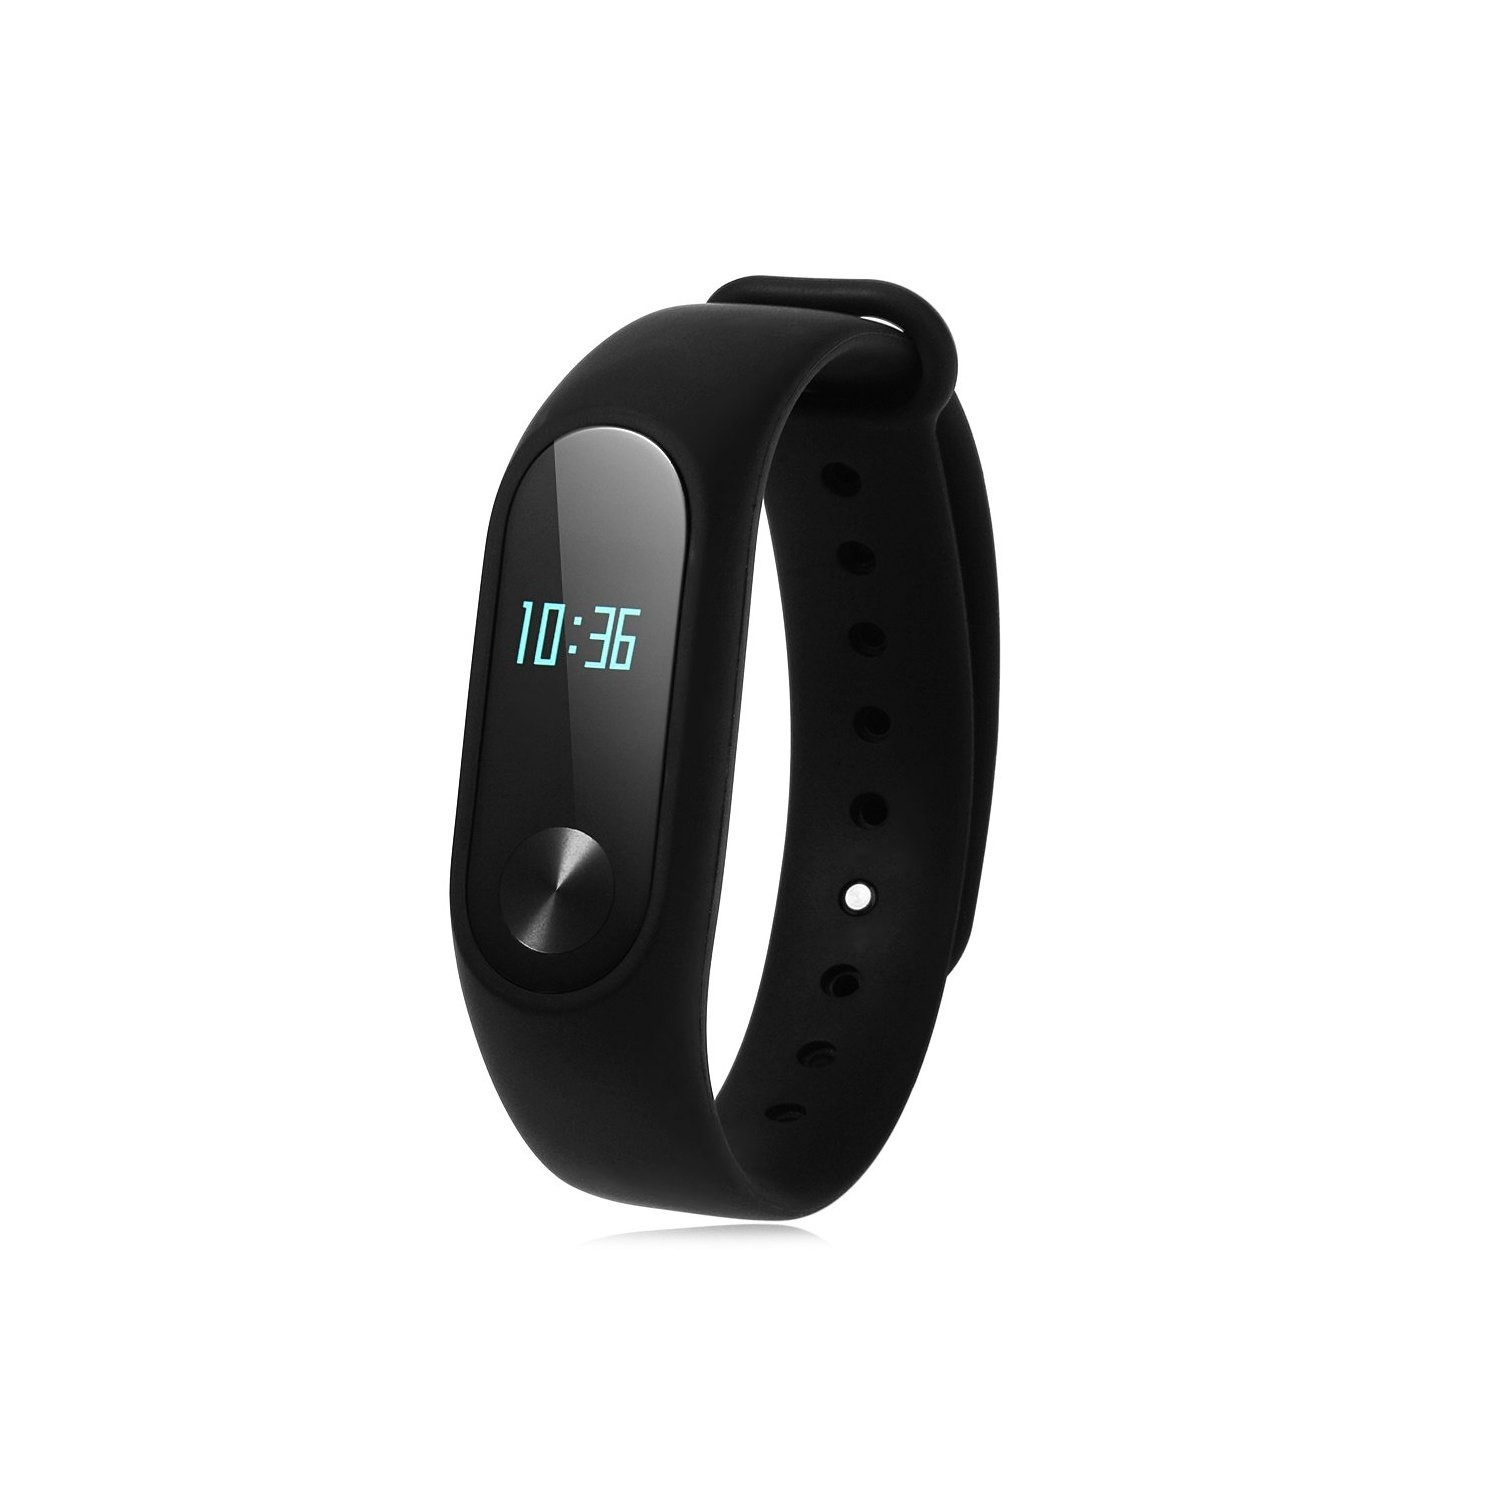 Xiaomi Mi Band 2 Global Version Smart Fitness Tracker With Oled Screen Heart Rate Sensor Black Laptops Direct